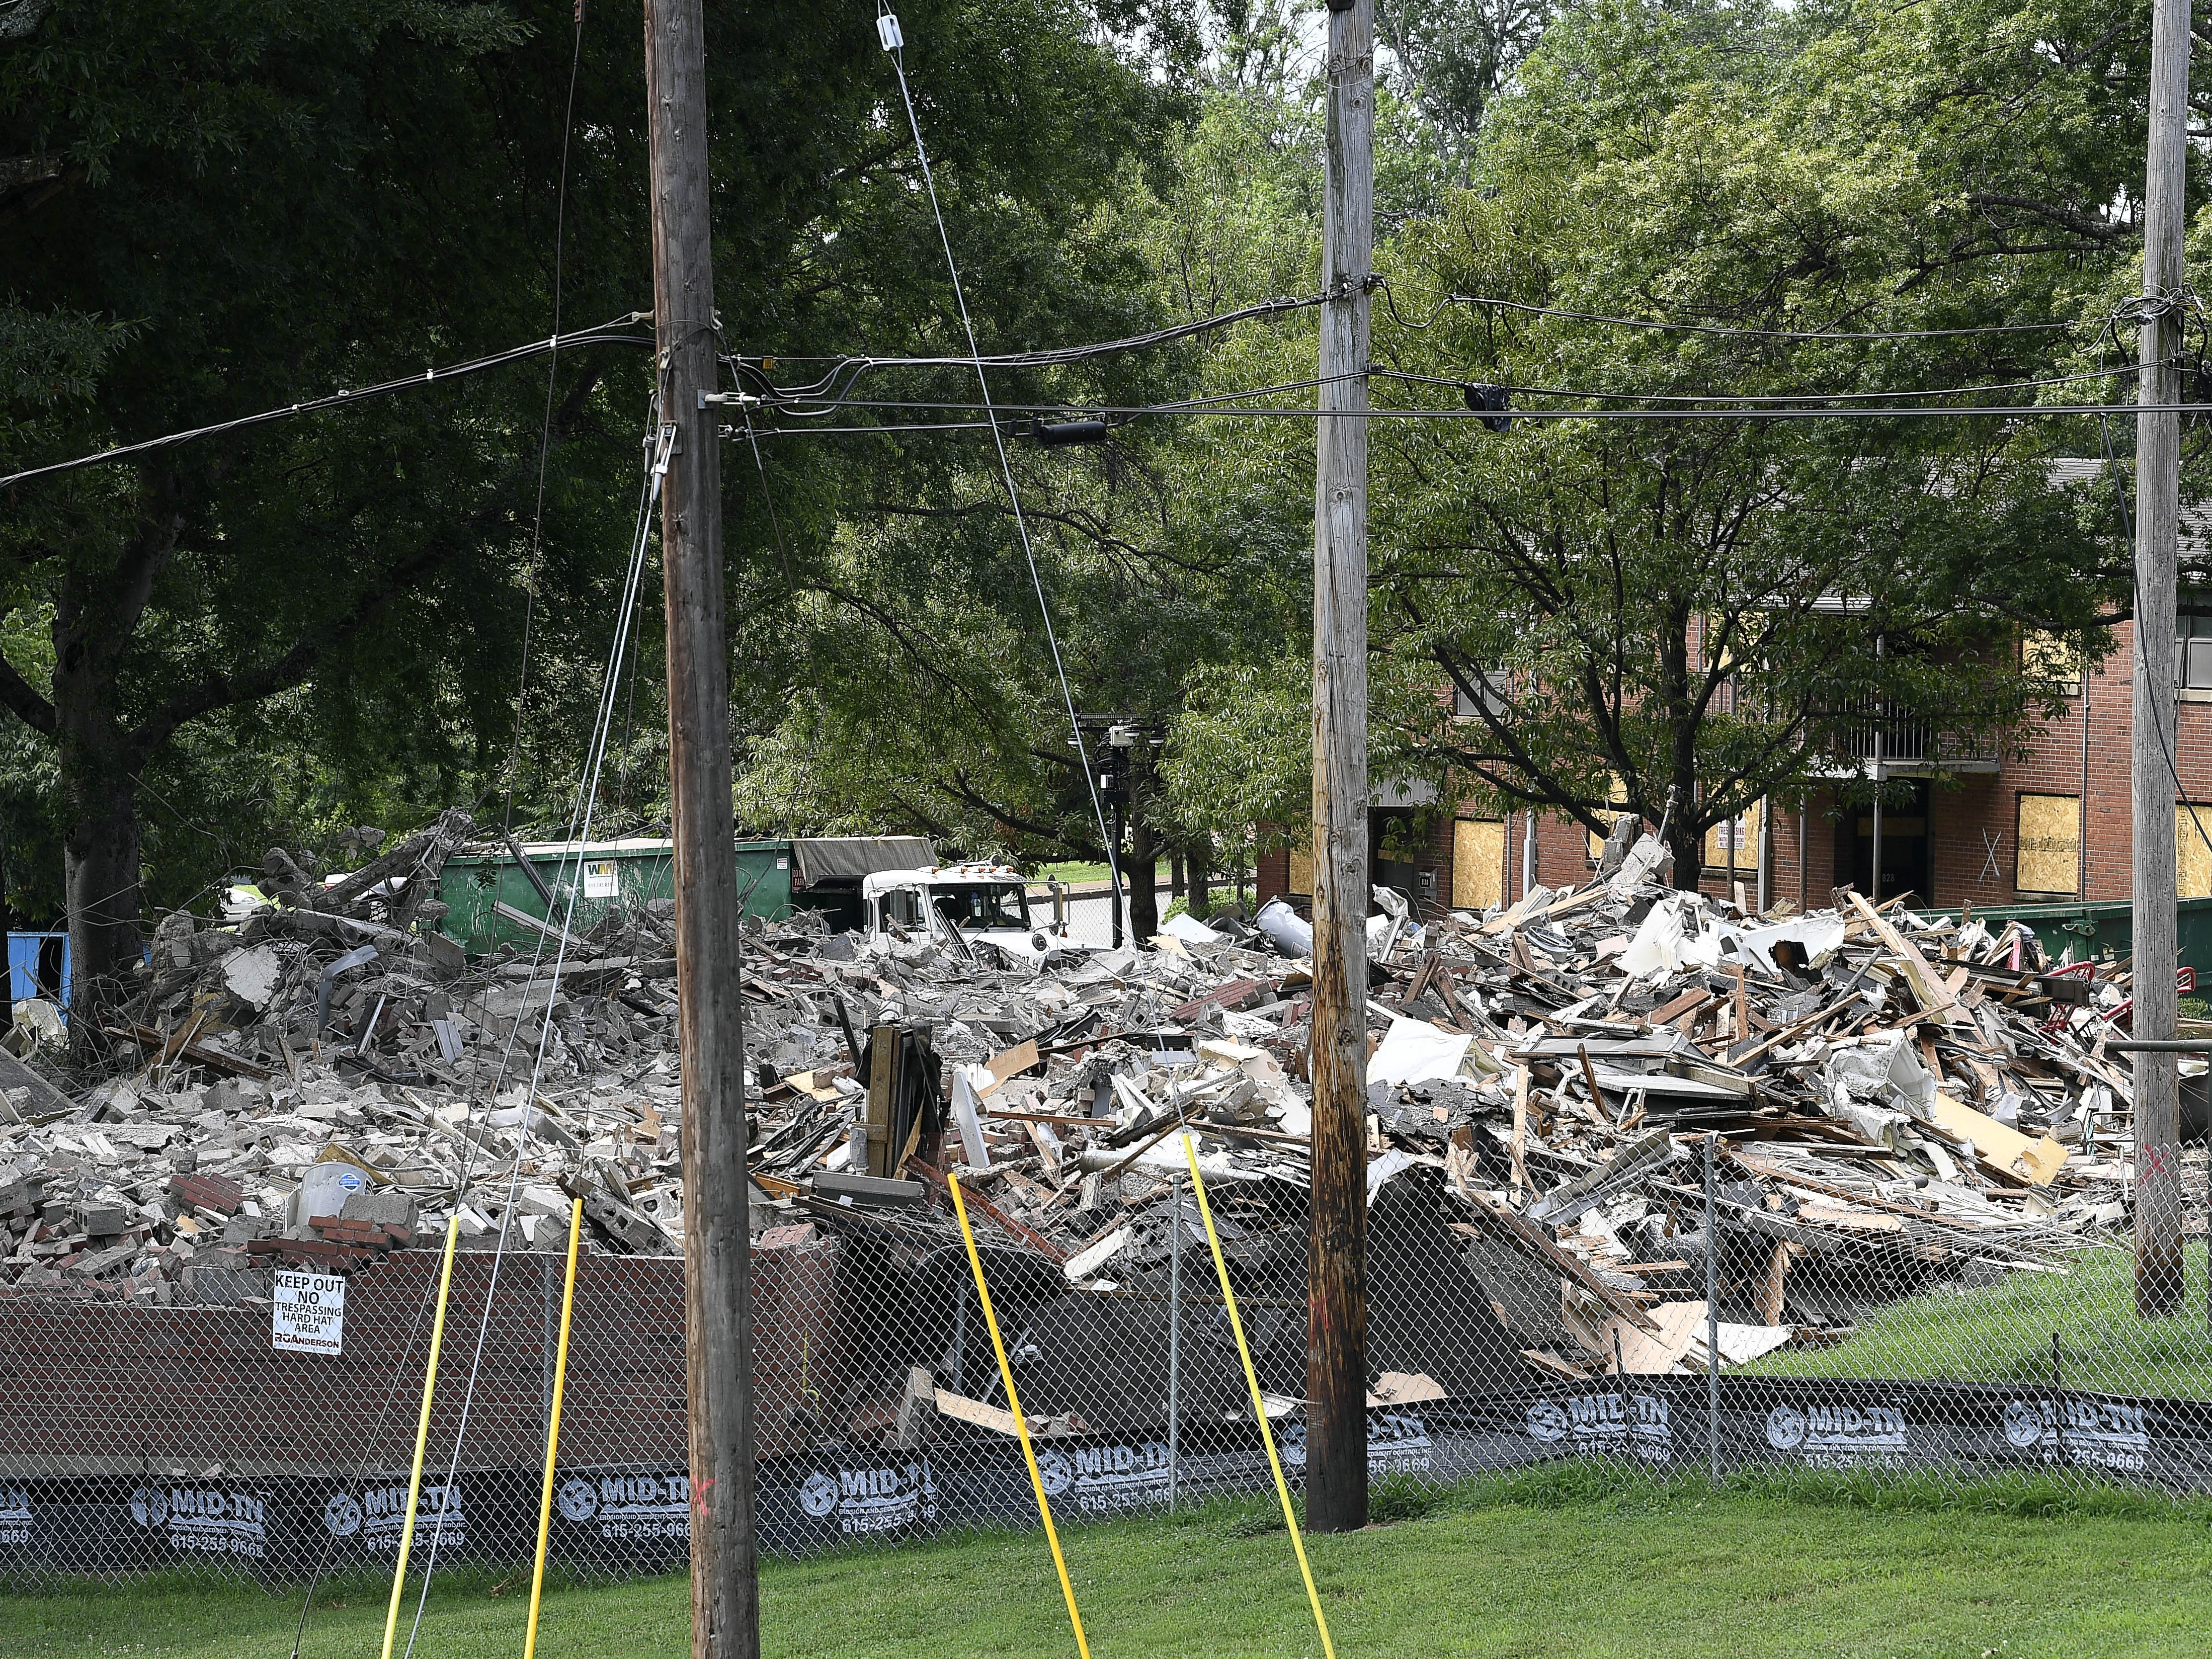 Construction workers demolish old public housing at the James A. Cayce Homes on July 18, 2018, on a site proposed for a new charter school to be run by the Martha O'Bryan Center.